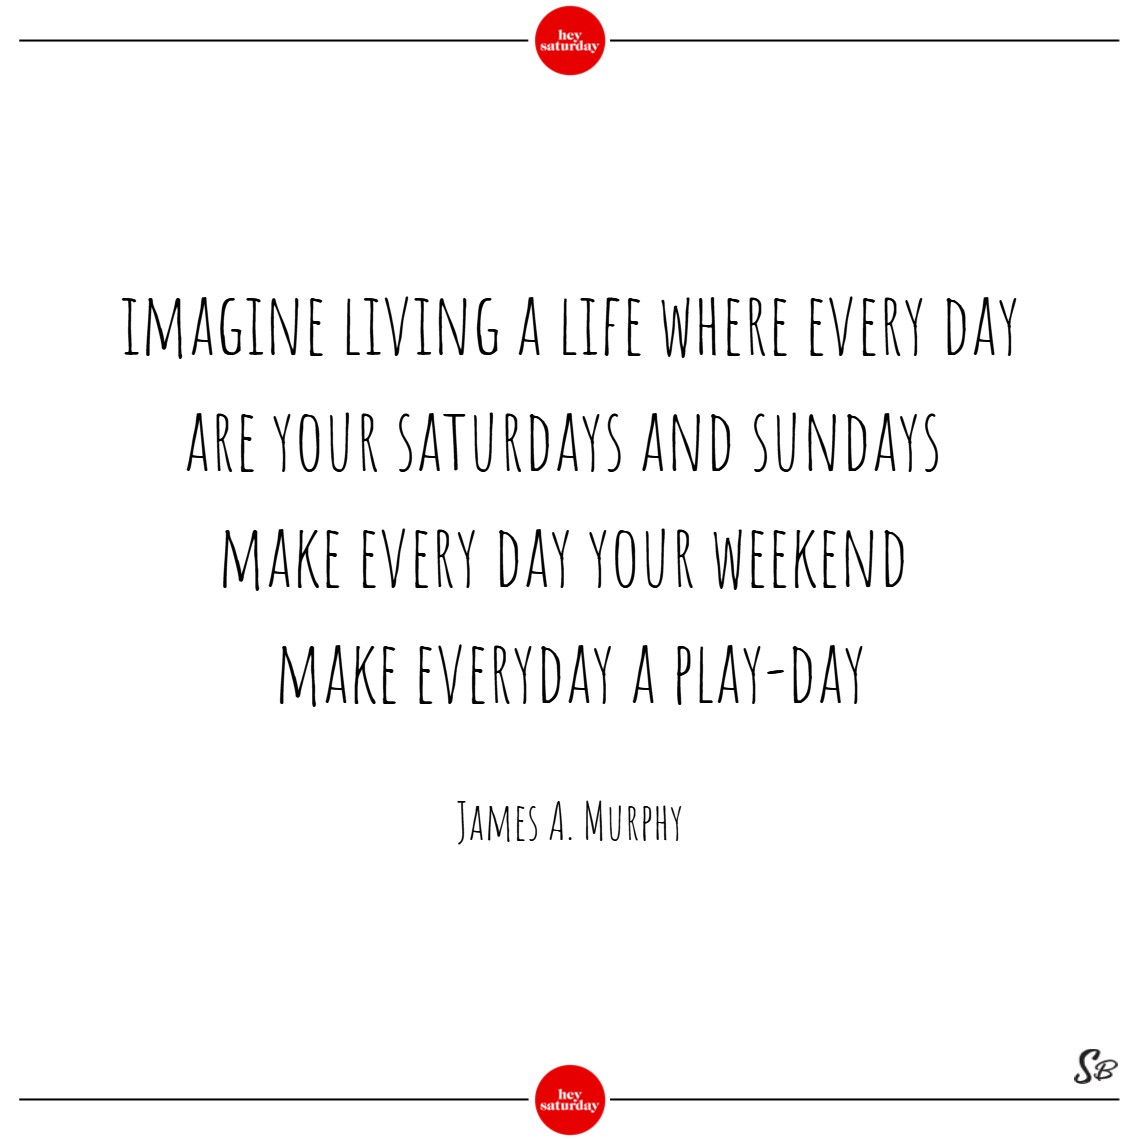 31 Awesome Saturday Quotes For The Weekend | Spirit Button